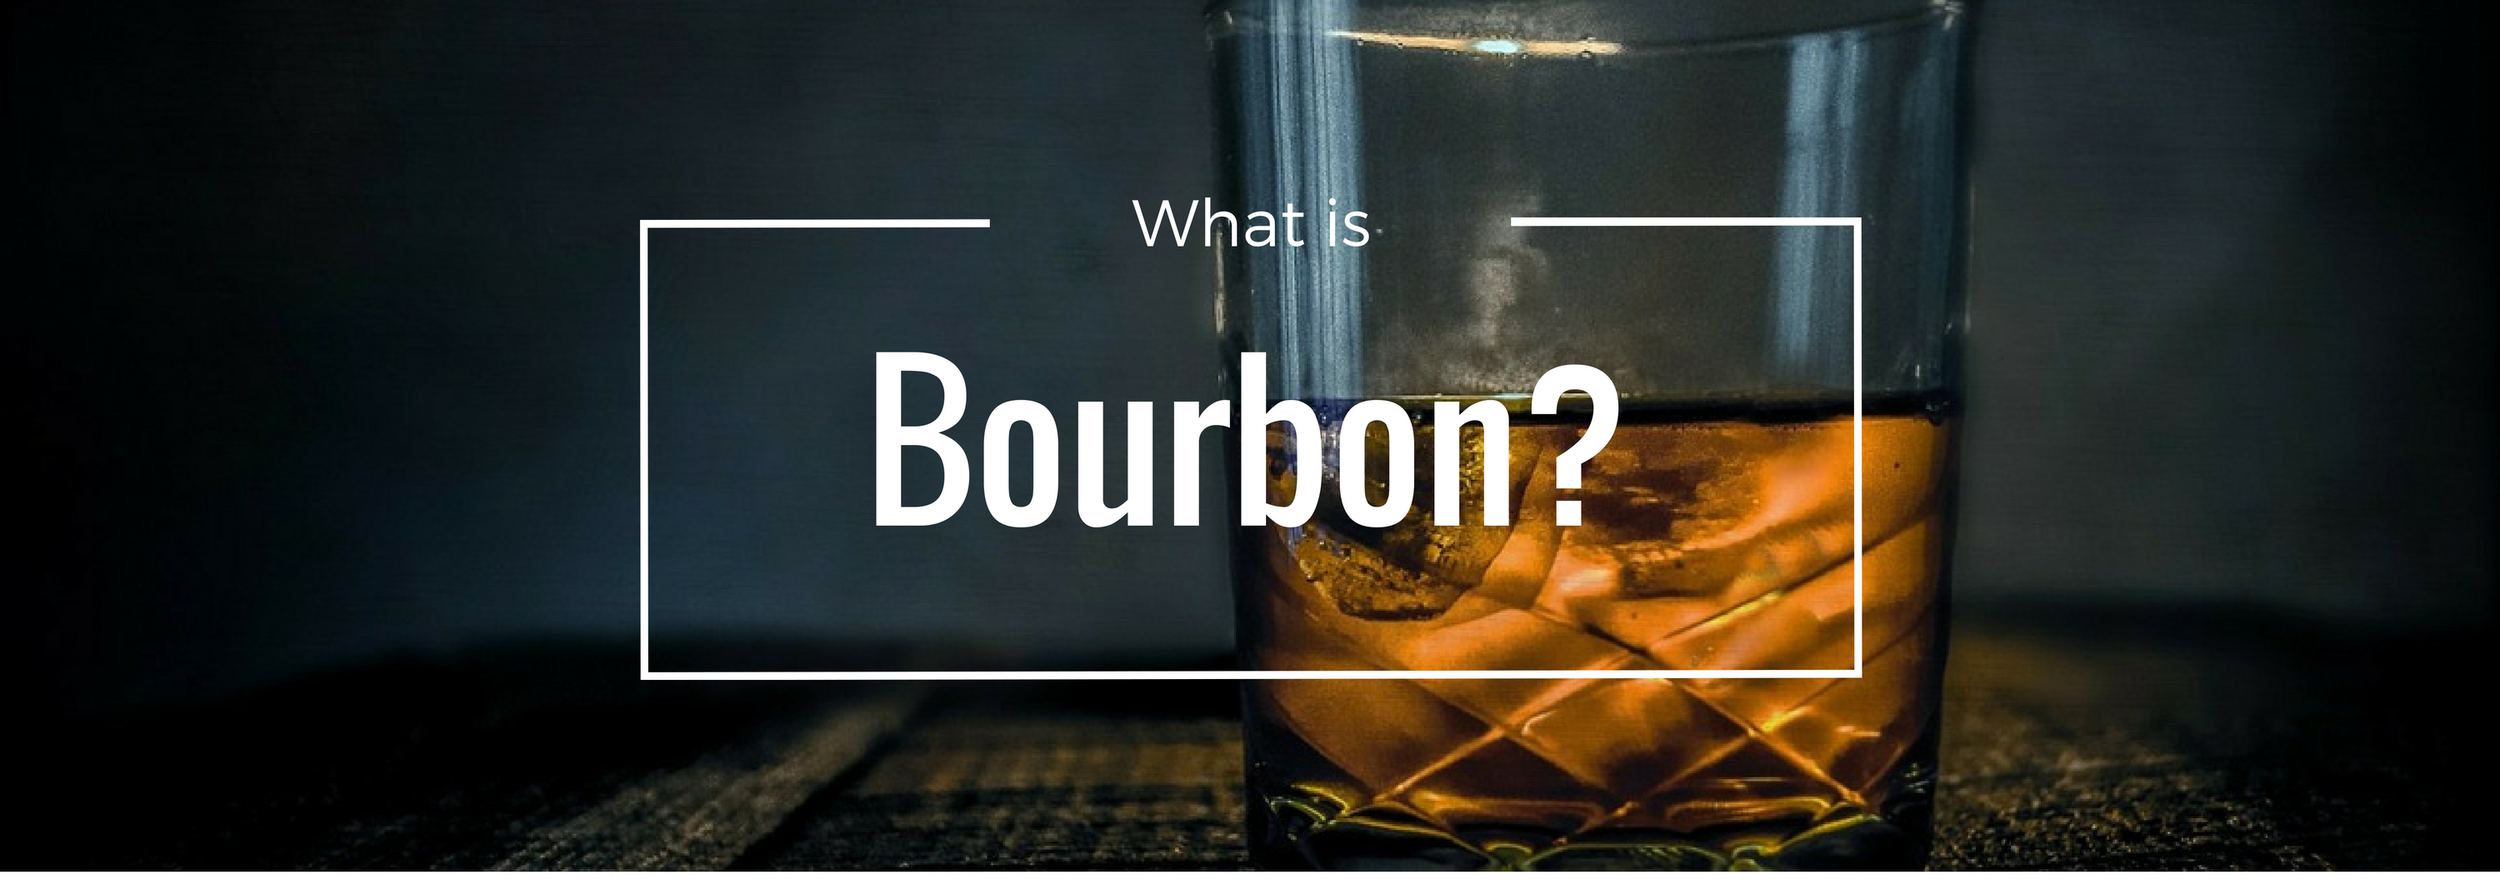 what-is-bourbon.png